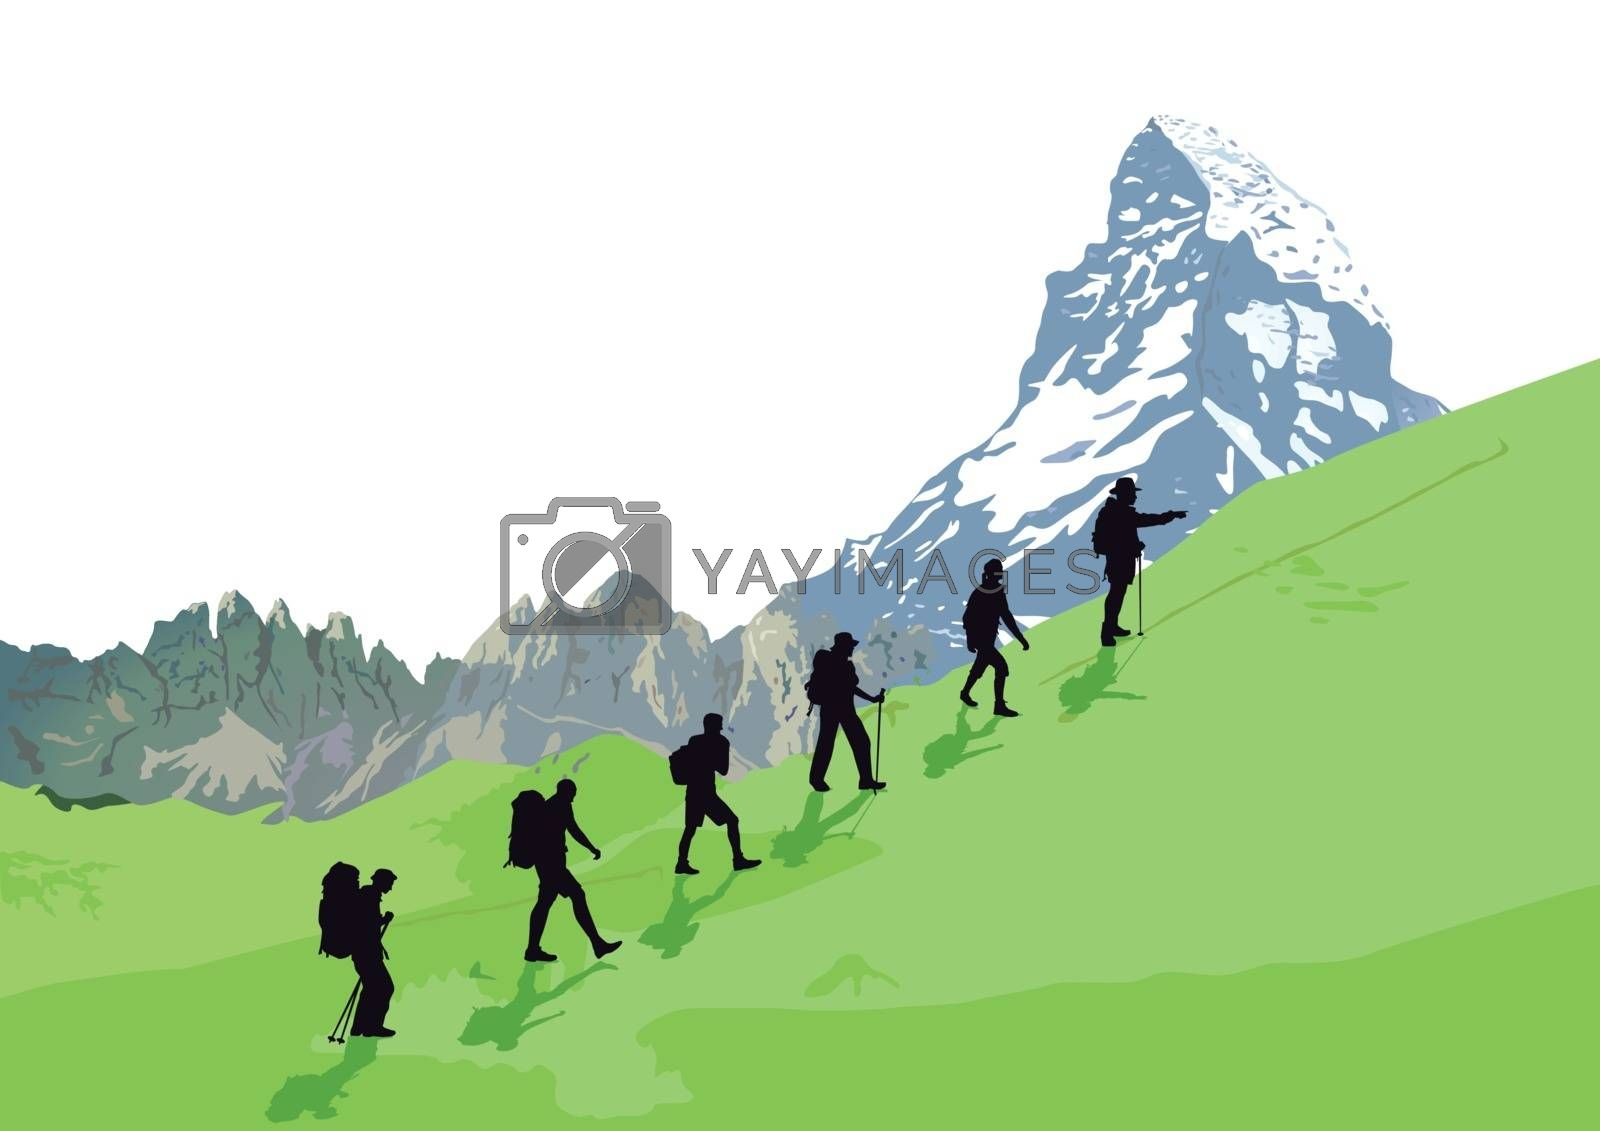 Climber in front of mountain scenery, illustration